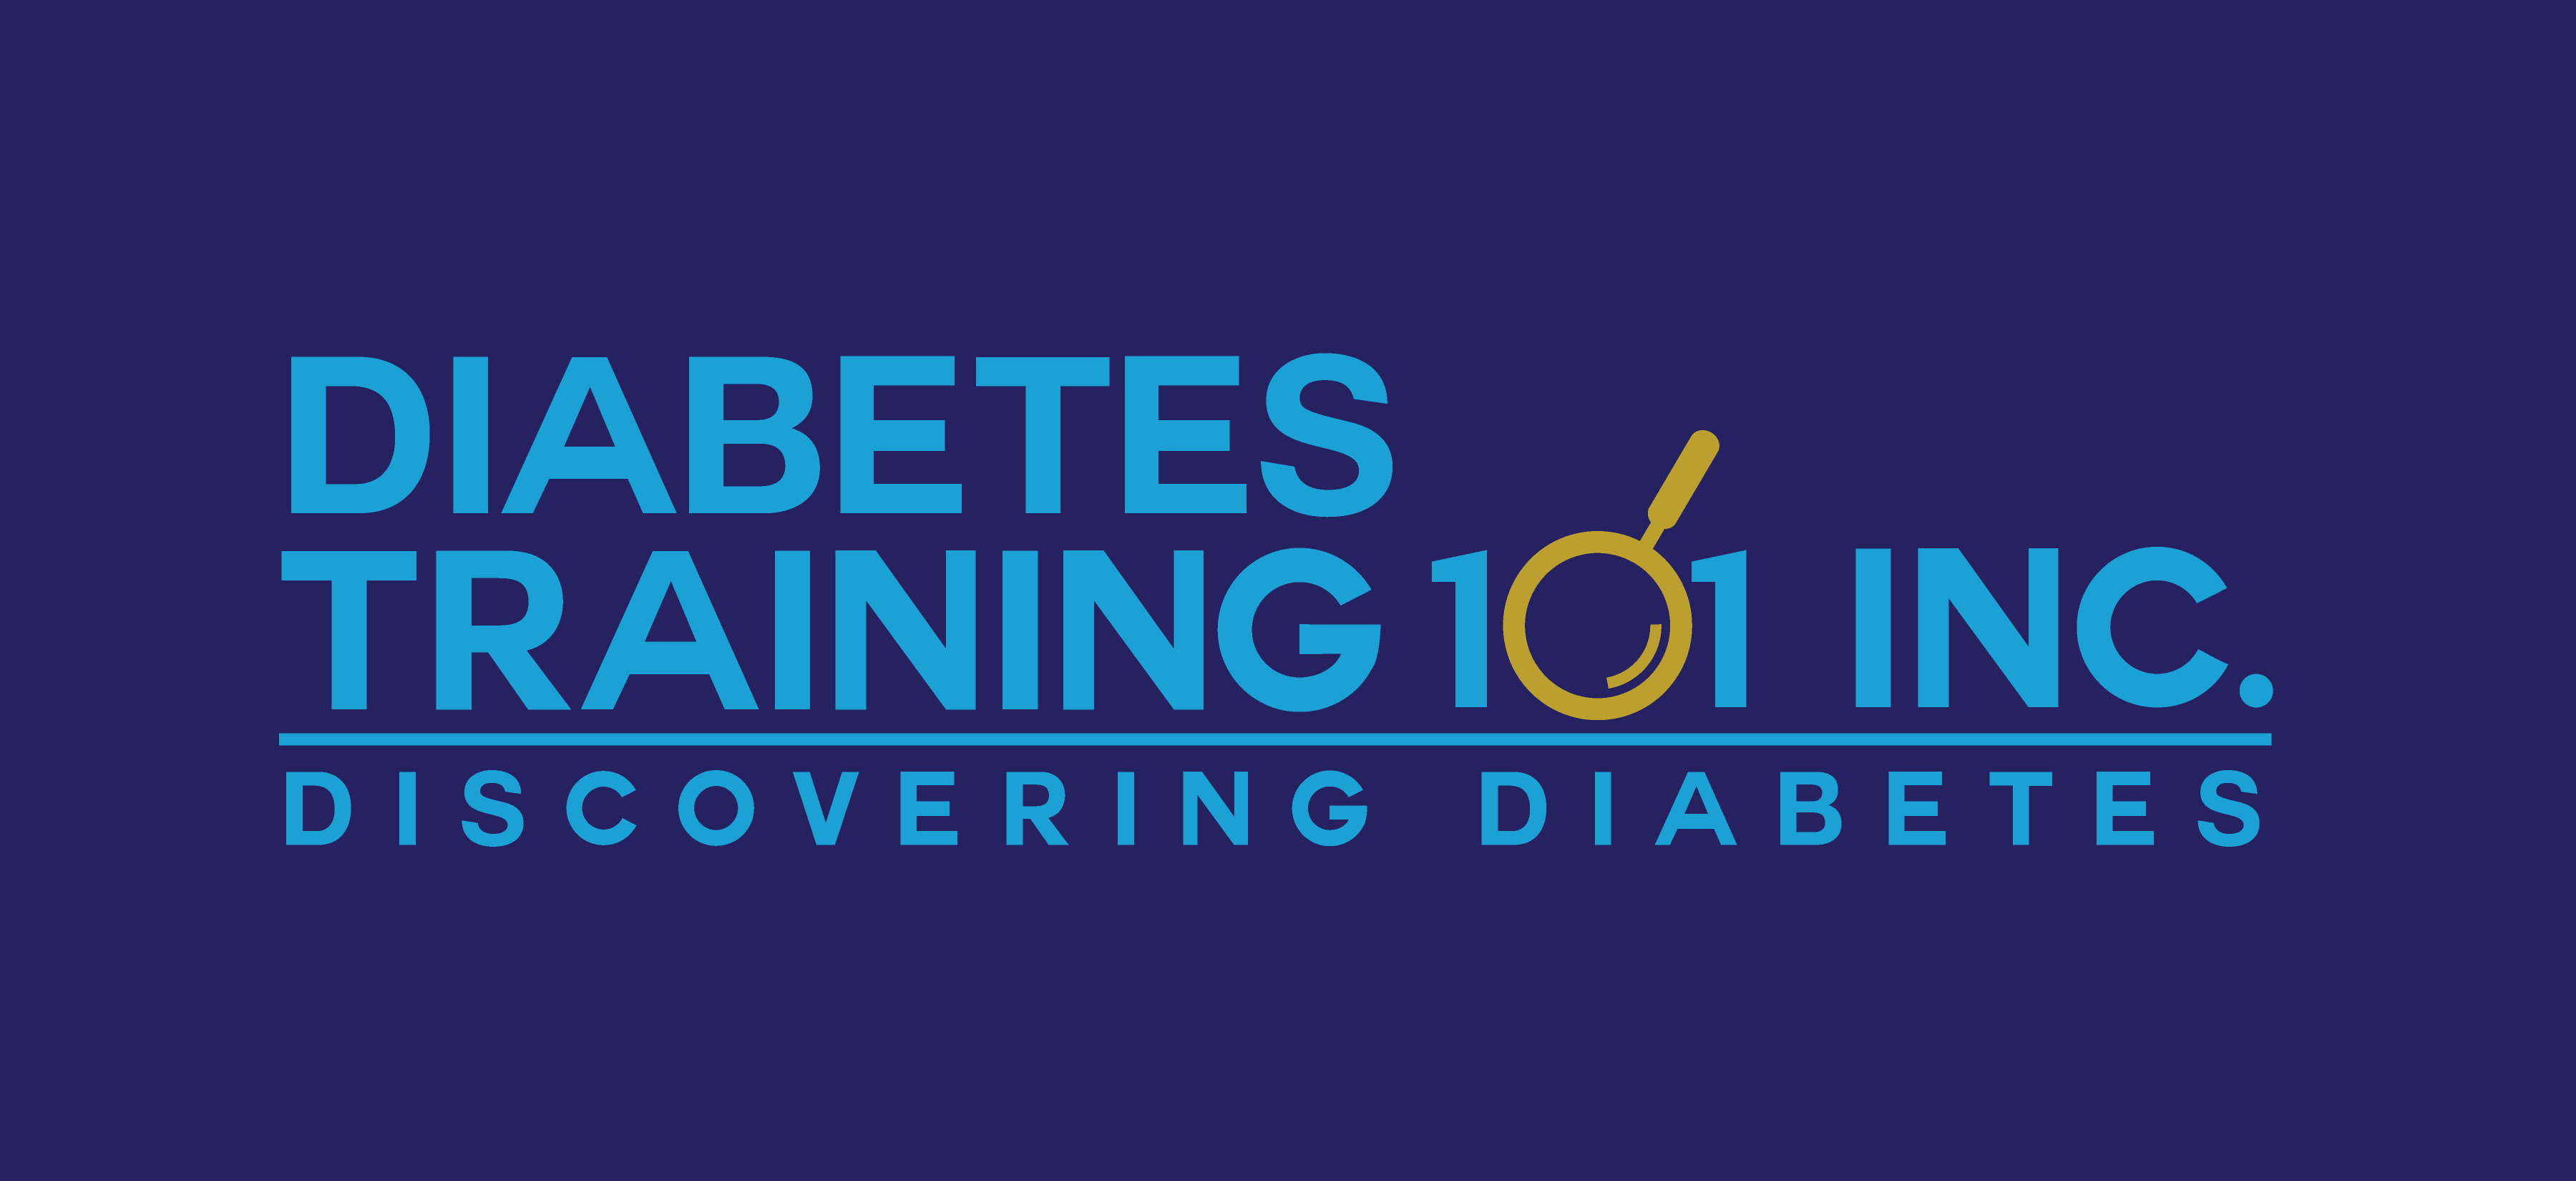 Diabetes Training 101 Inc.